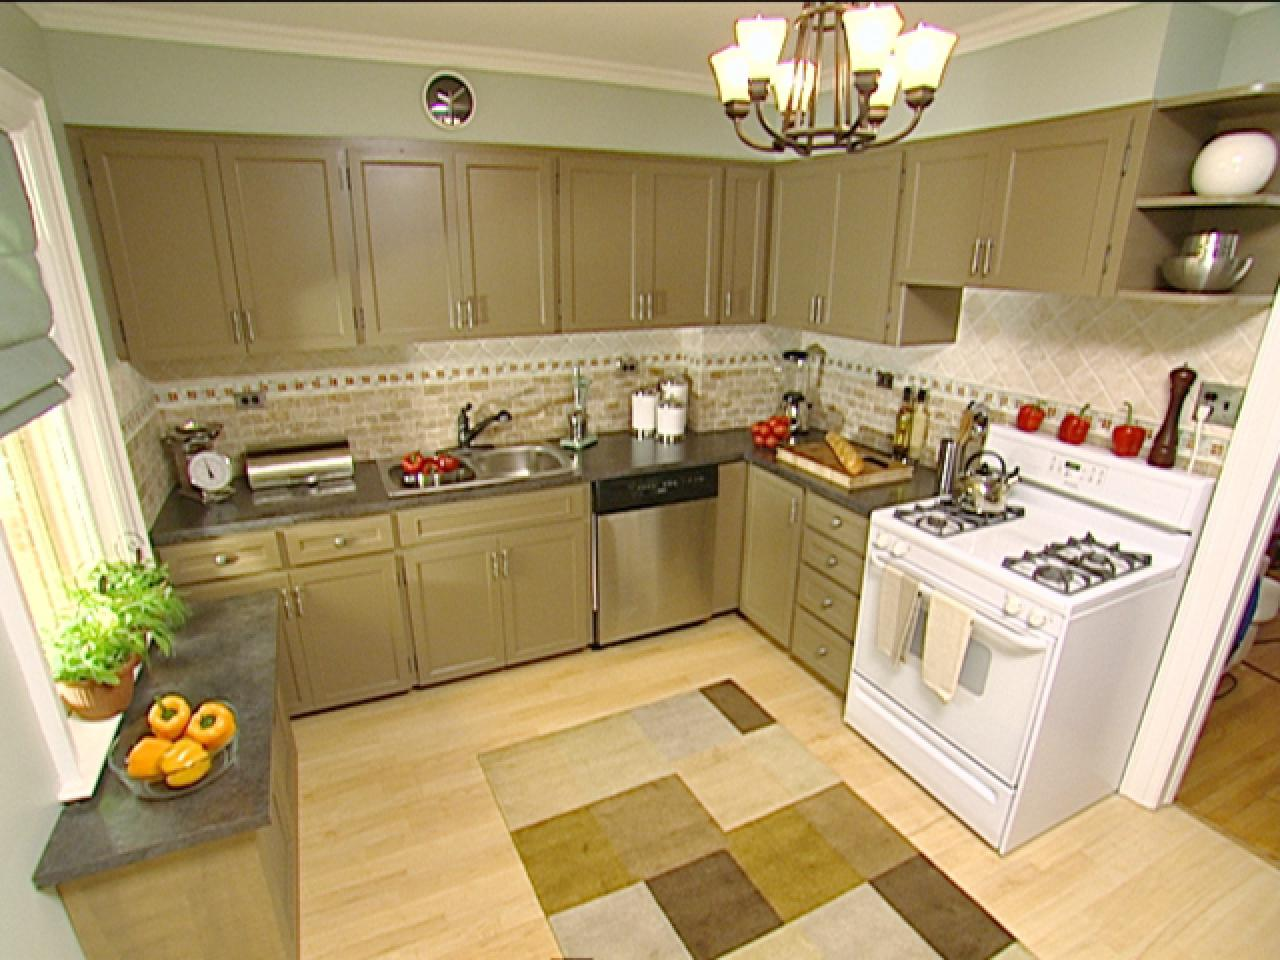 Color Enhances FamilyFriendly Kitchen HGTV - Latest kitchen cabinet colors